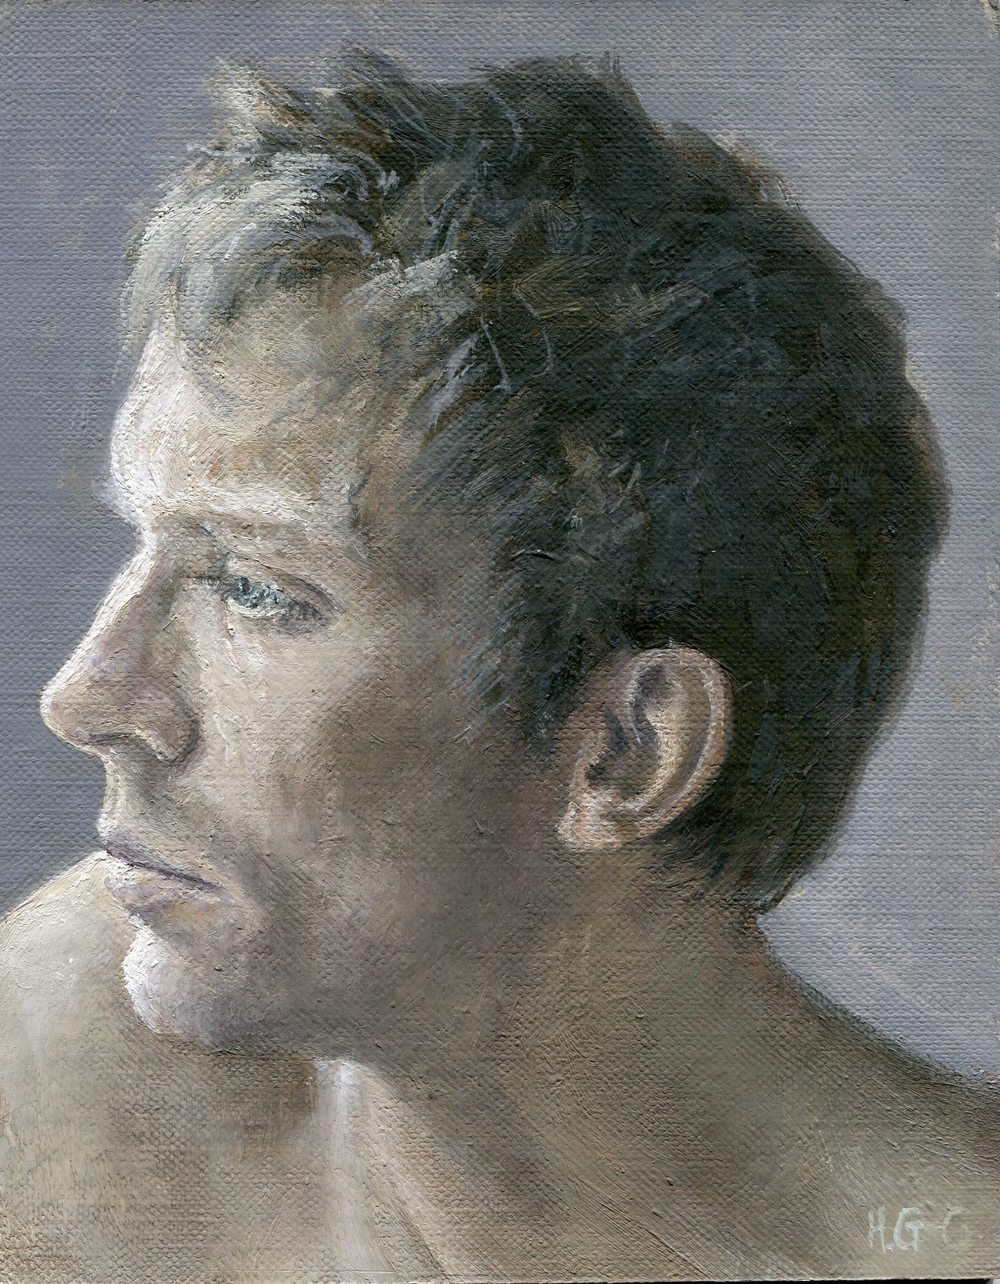 42 Gourlay Conyngham, Heather-Portrait Sketch, Oil on canvass.jpg